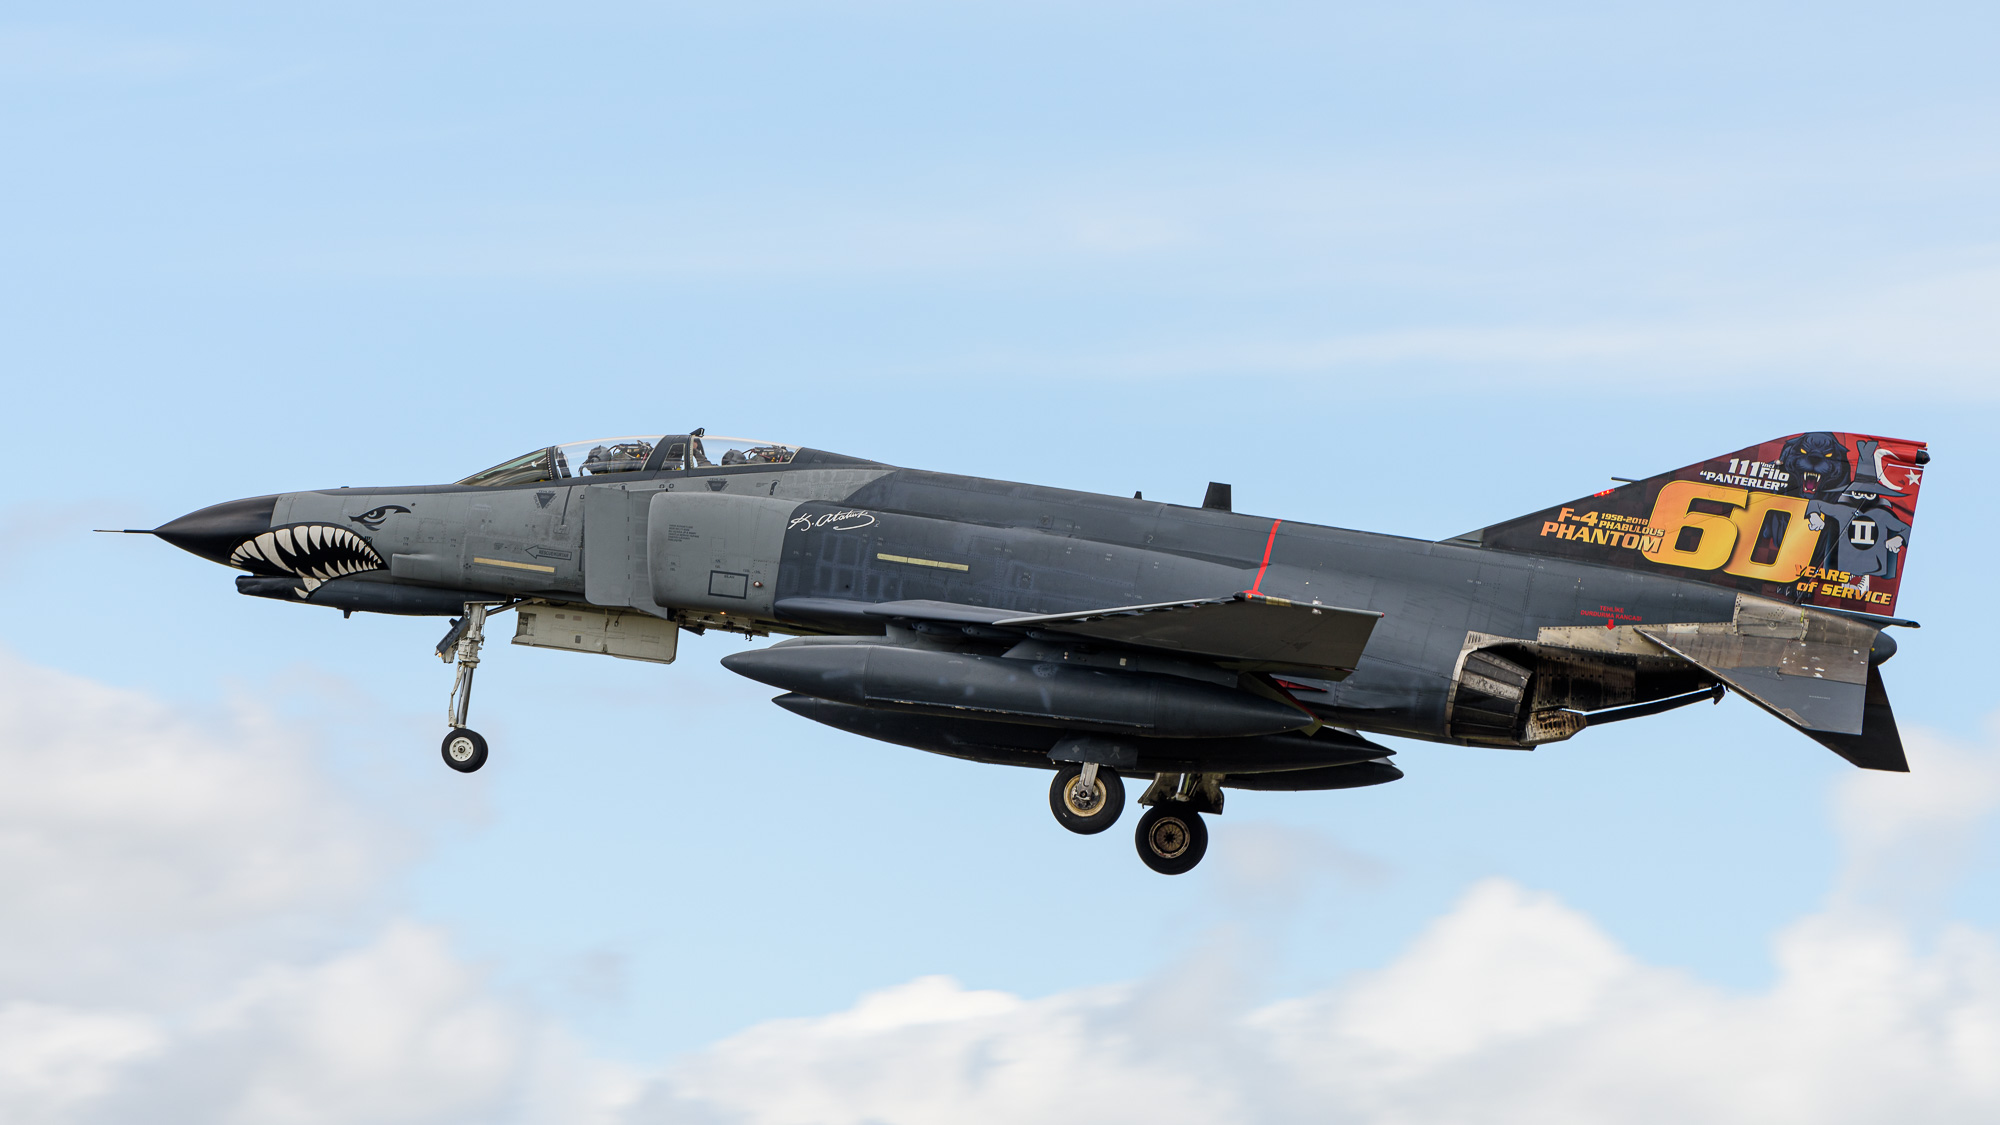 Turkish F-4 celebrating 60 years of service